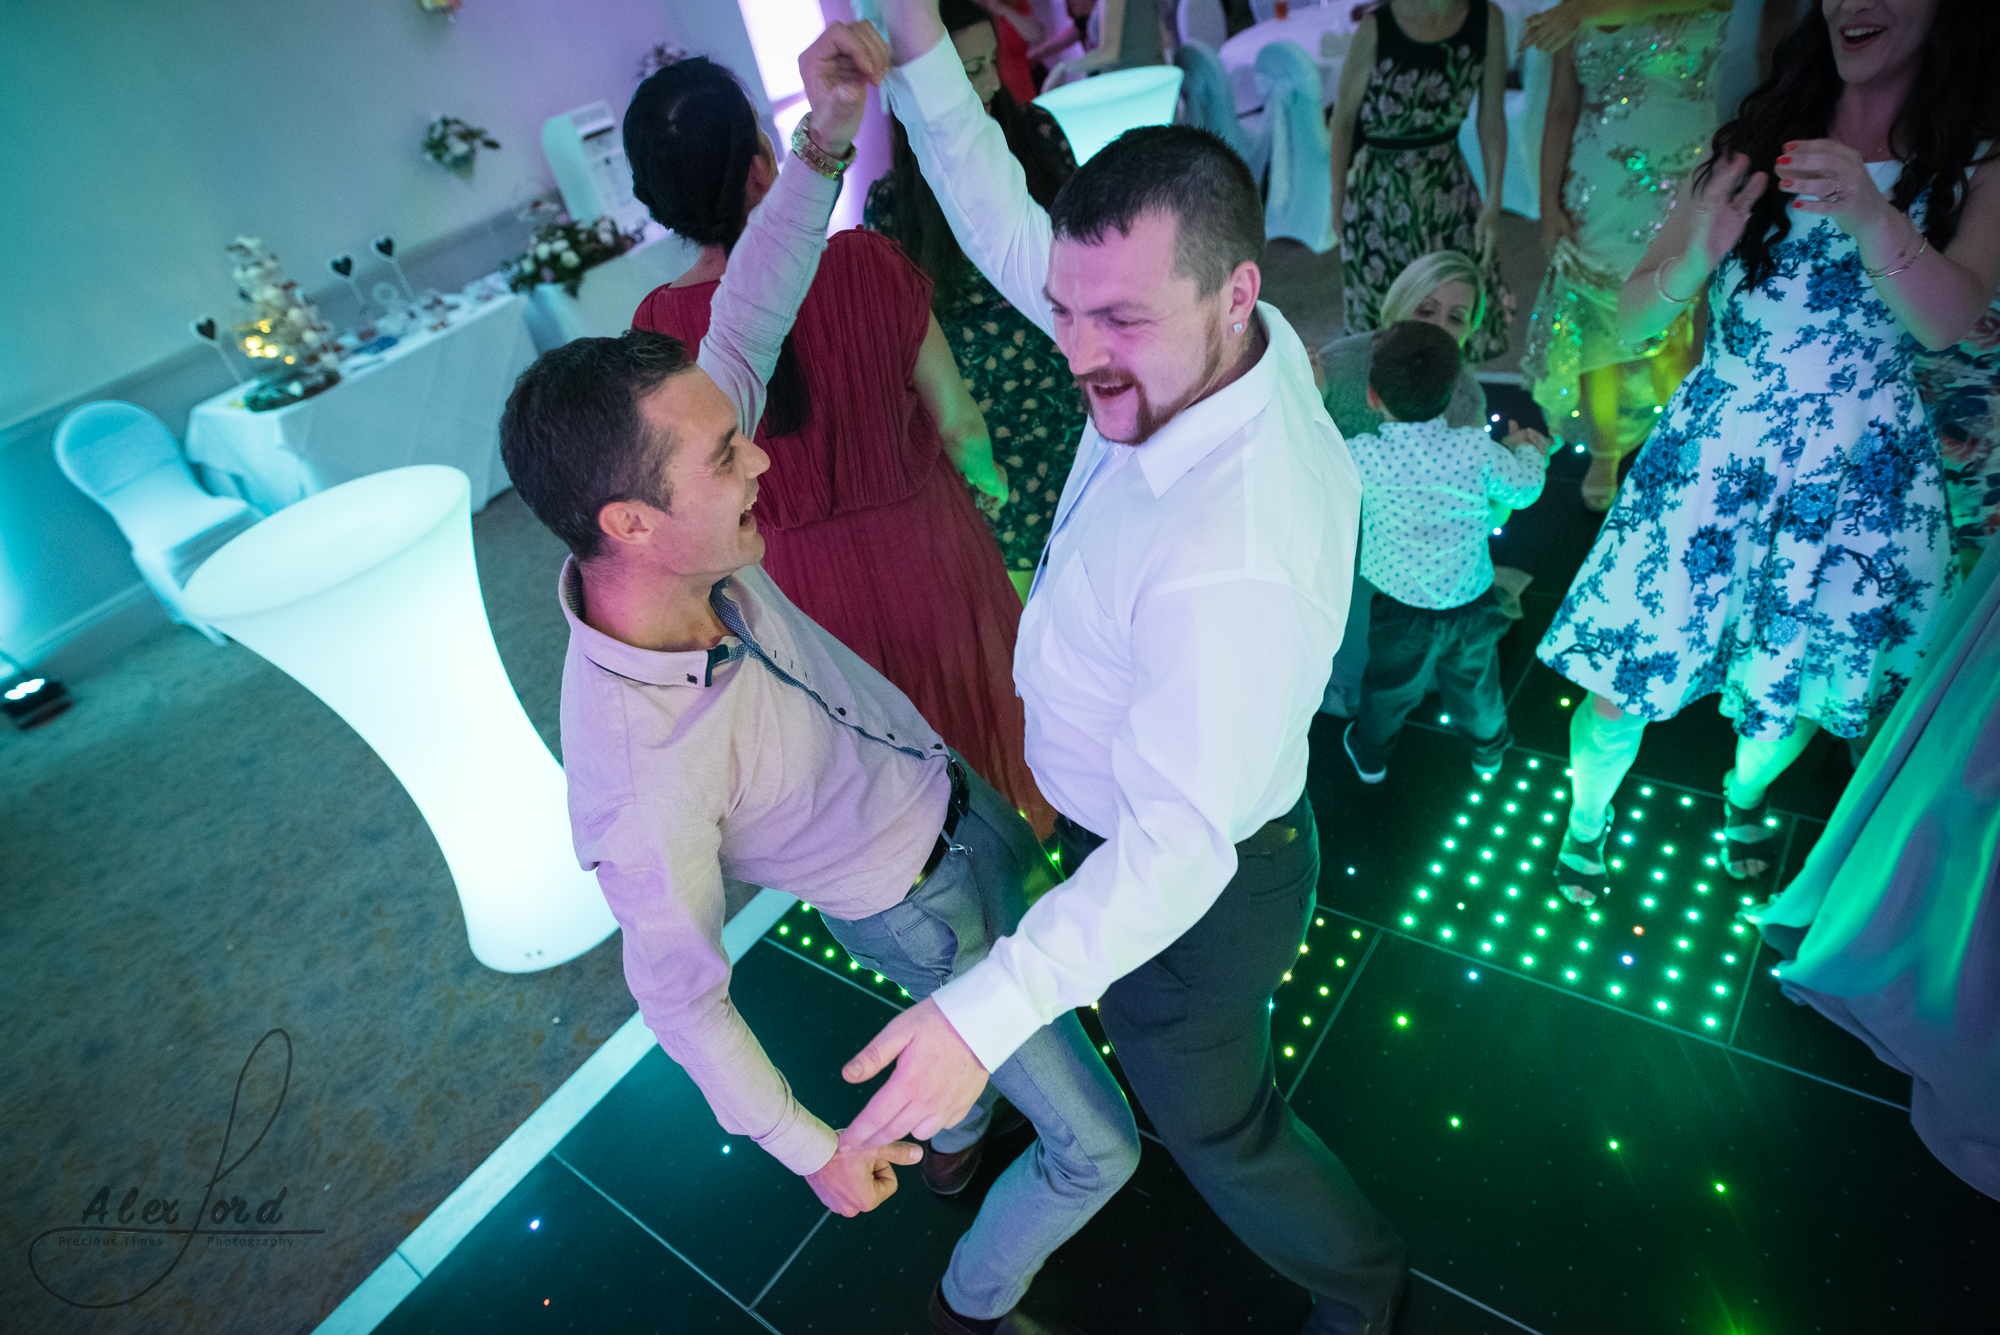 two male wedding guests on the dance floor with their arms up in the air